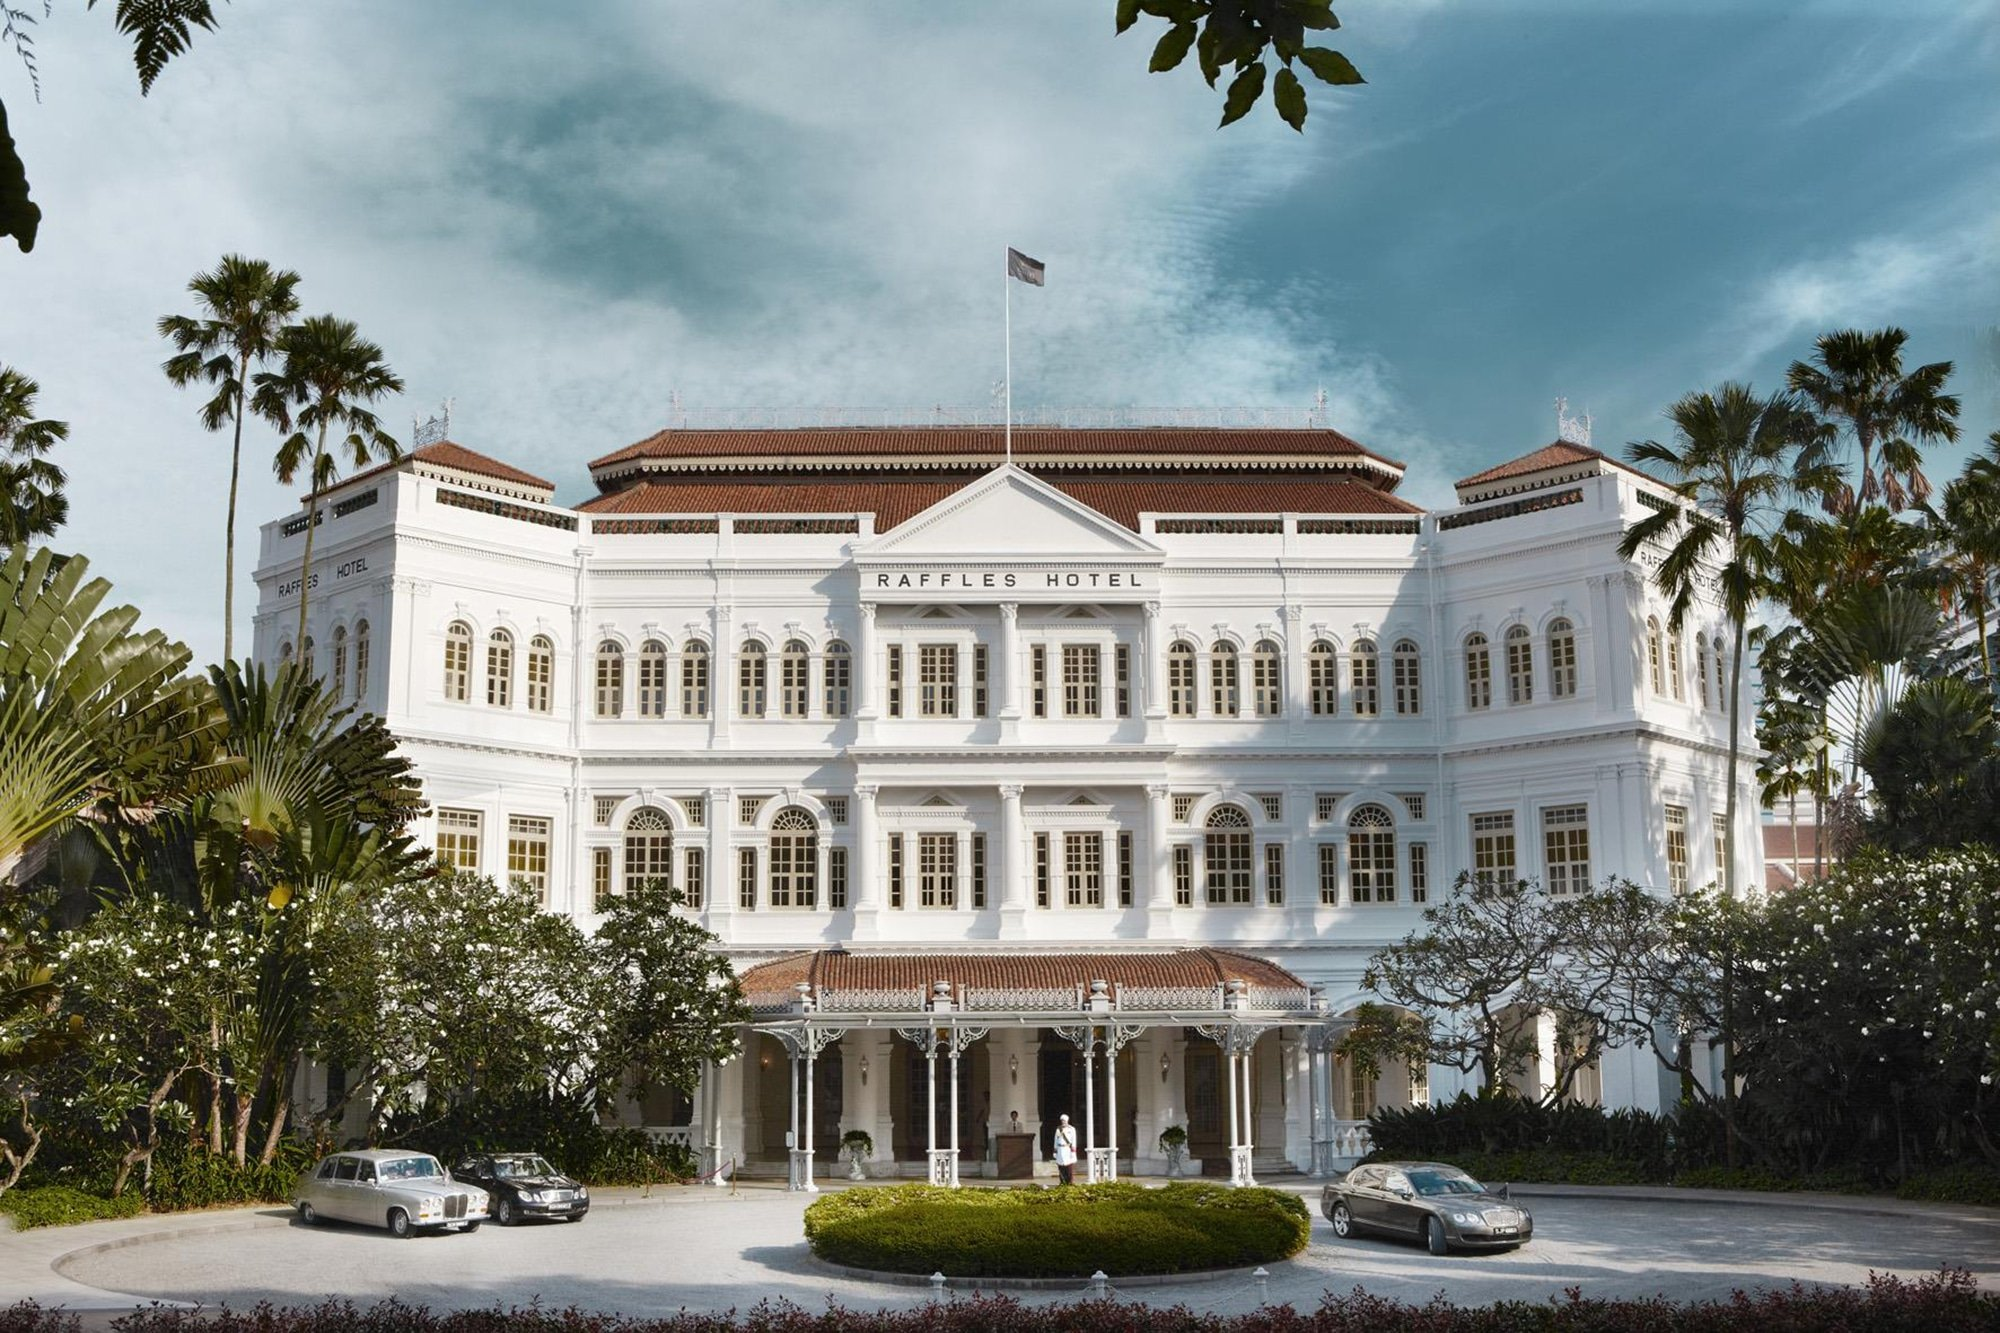 Colonial exterior of the famous Raffles Singapore Hotel. The famous doormen are standing in front.